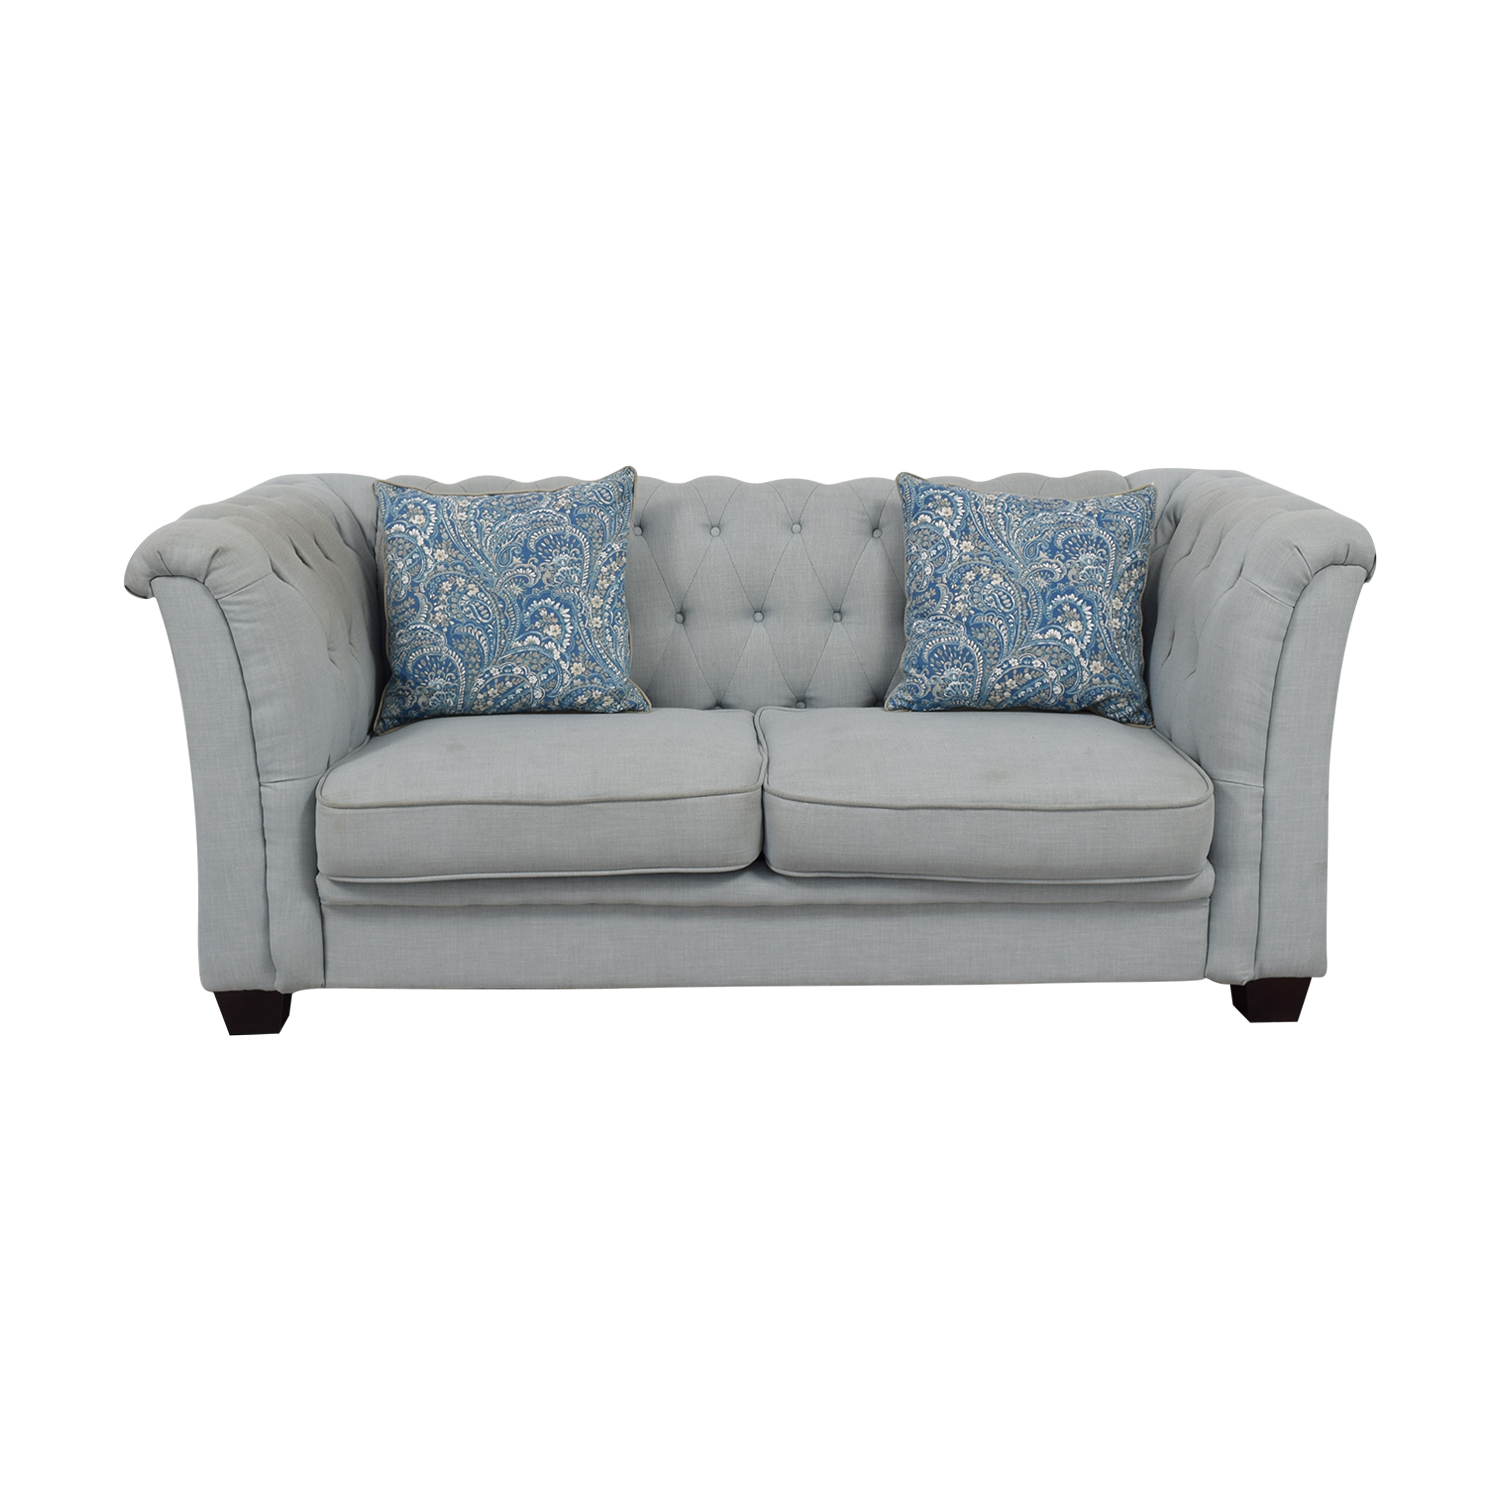 Delvi Furniture Sky Blue Tufted Two-Cushion Sofa / Sofas